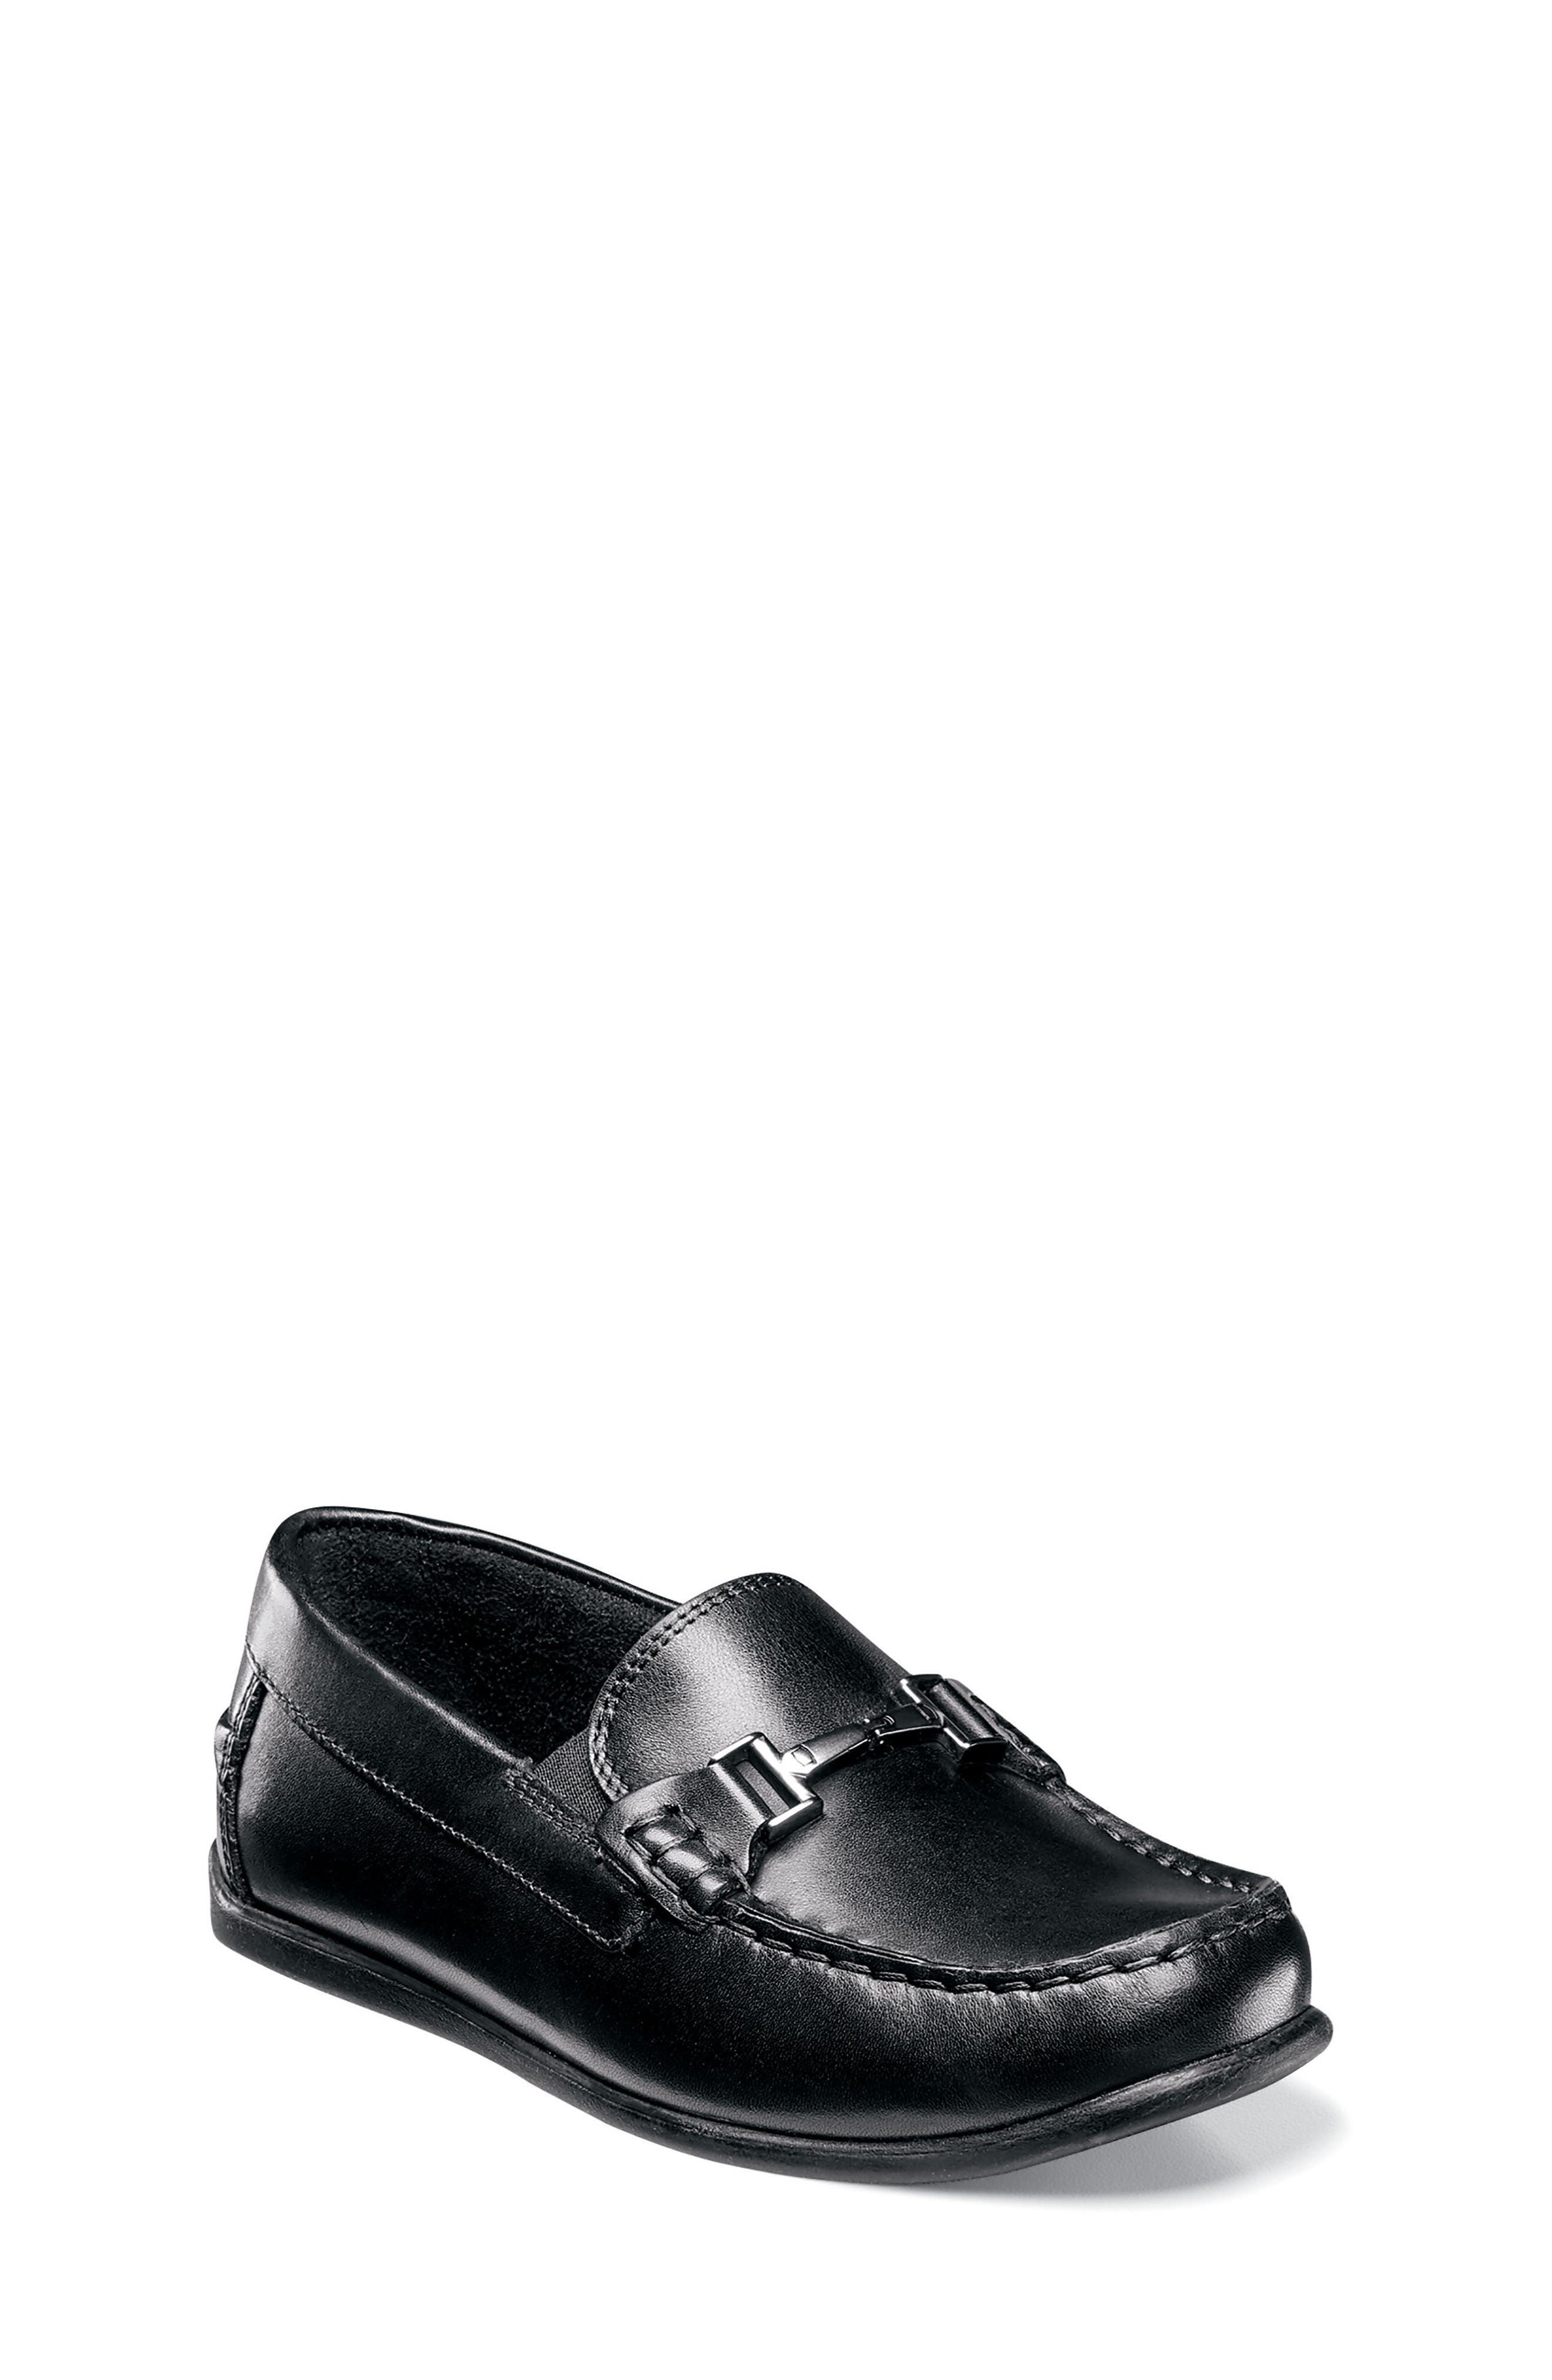 Main Image - Florsheim Jasper Bit Jr Loafer (Toddler, Little Kid & Big Kid)